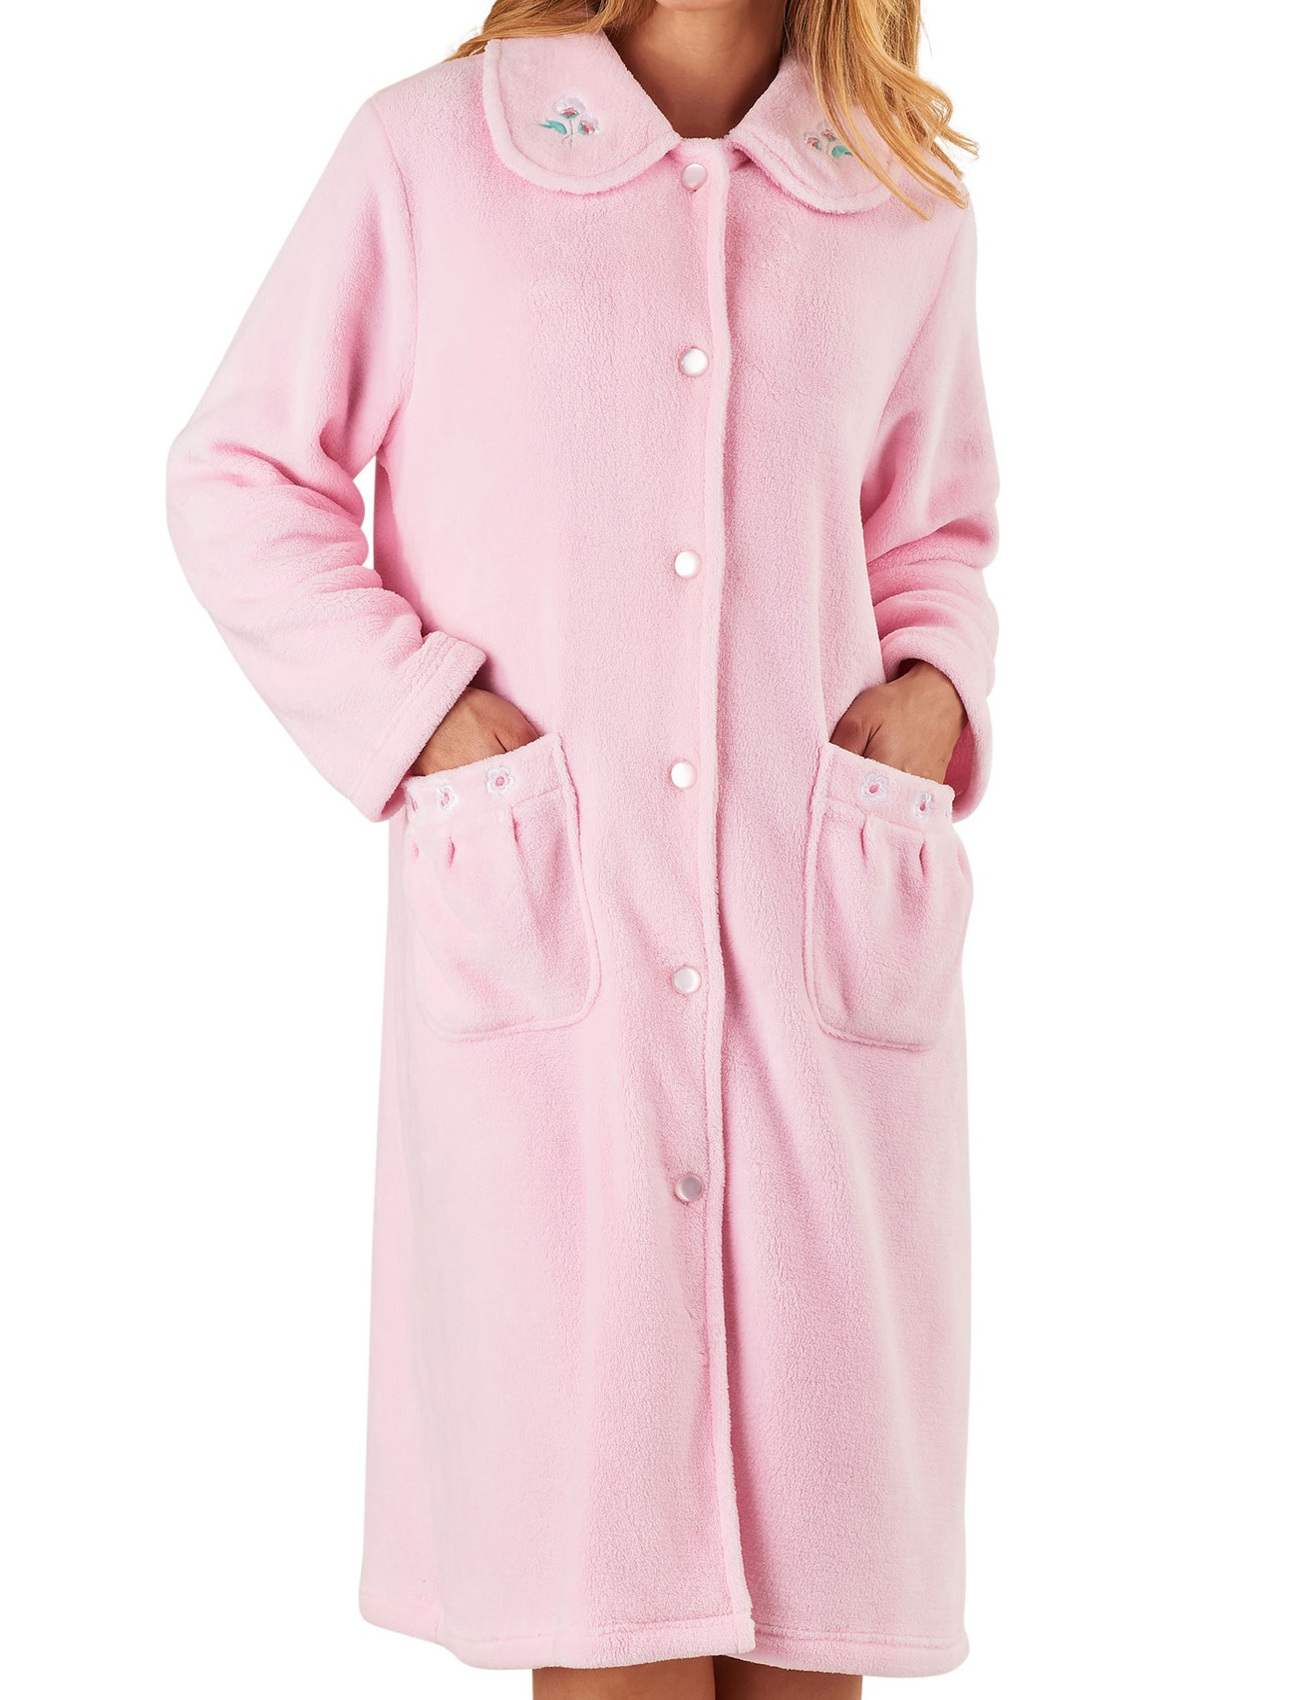 Dressing Gown Womens Floral Collar Button Up Bath Robe